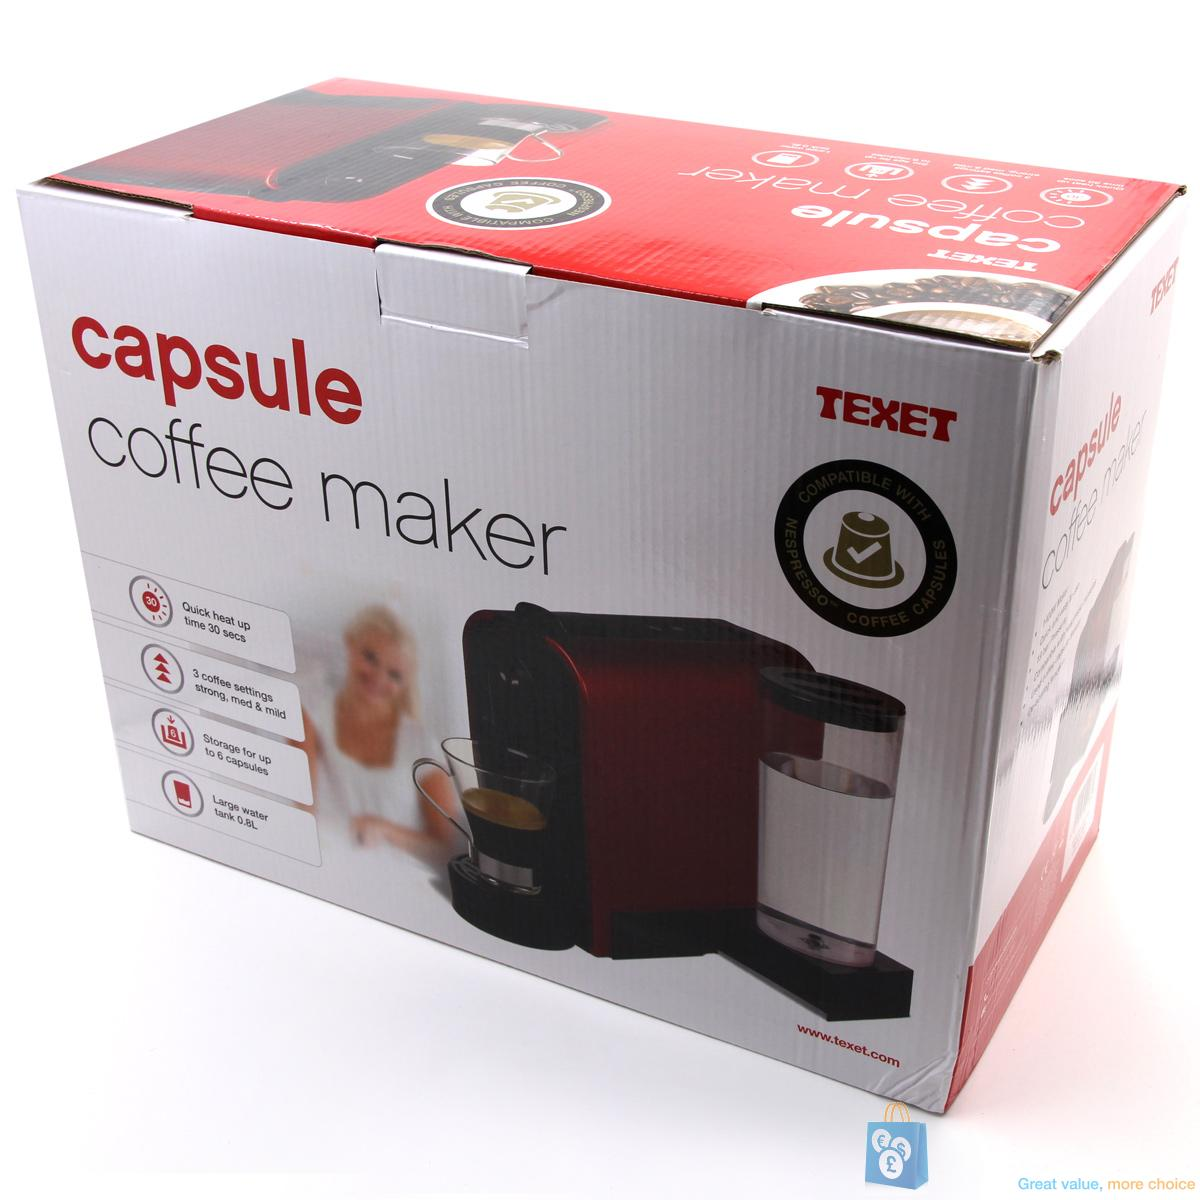 nespresso compatible capsule coffee maker by texet ebay. Black Bedroom Furniture Sets. Home Design Ideas